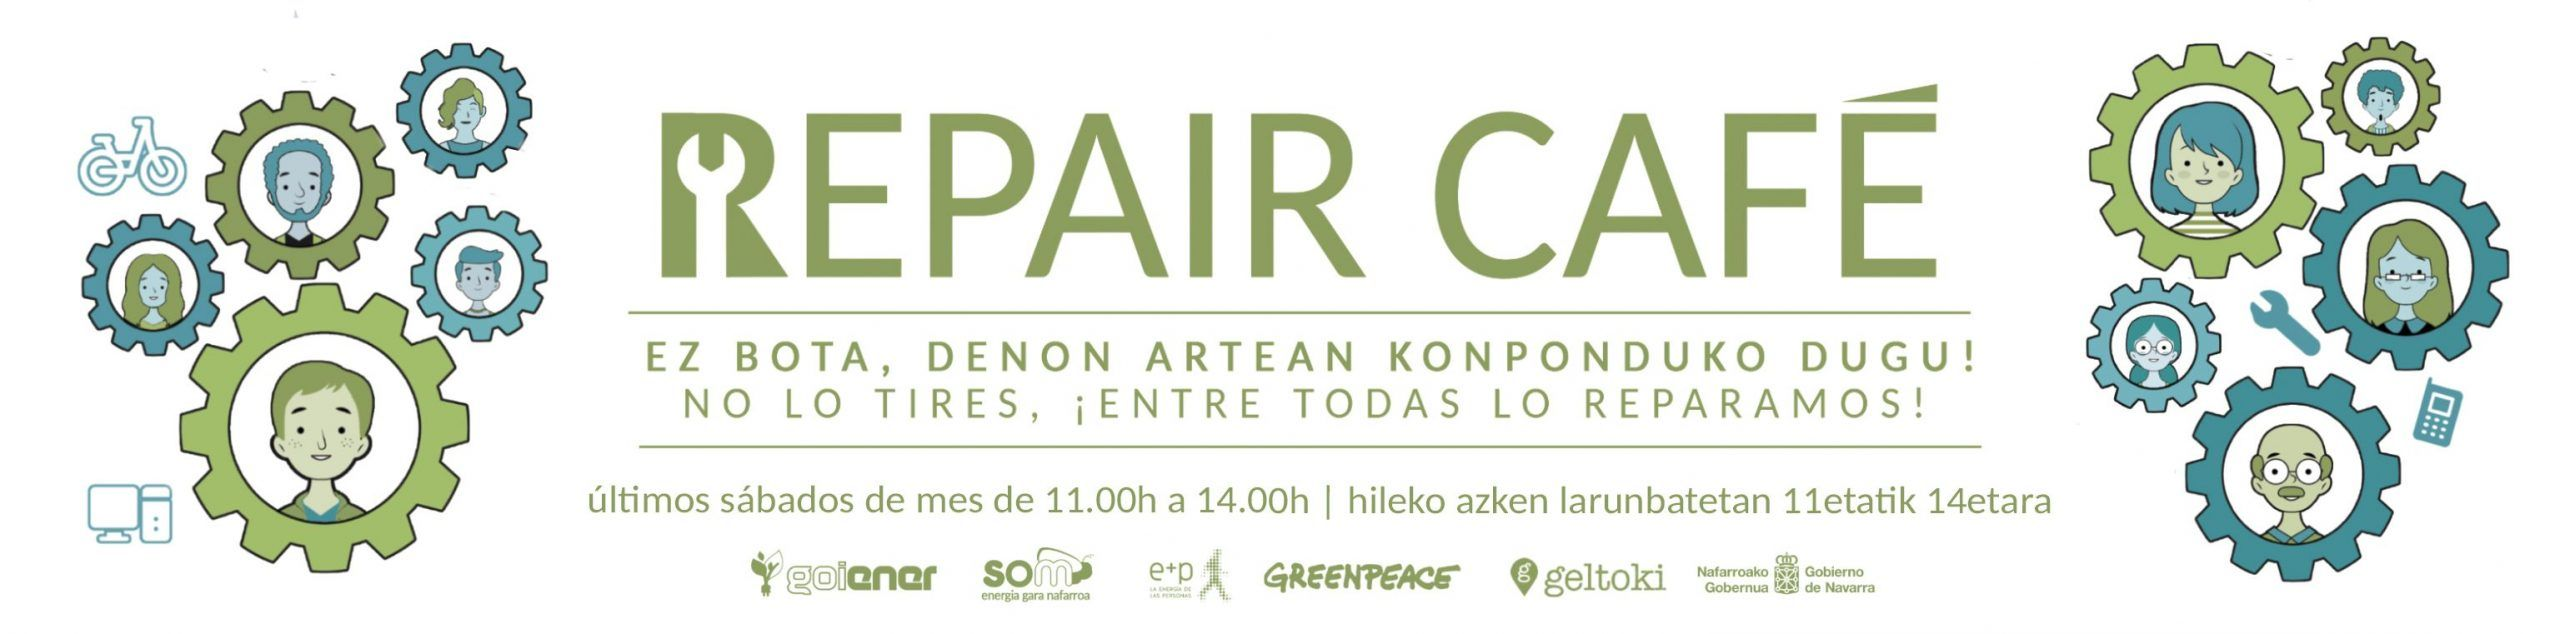 repair cafe_web